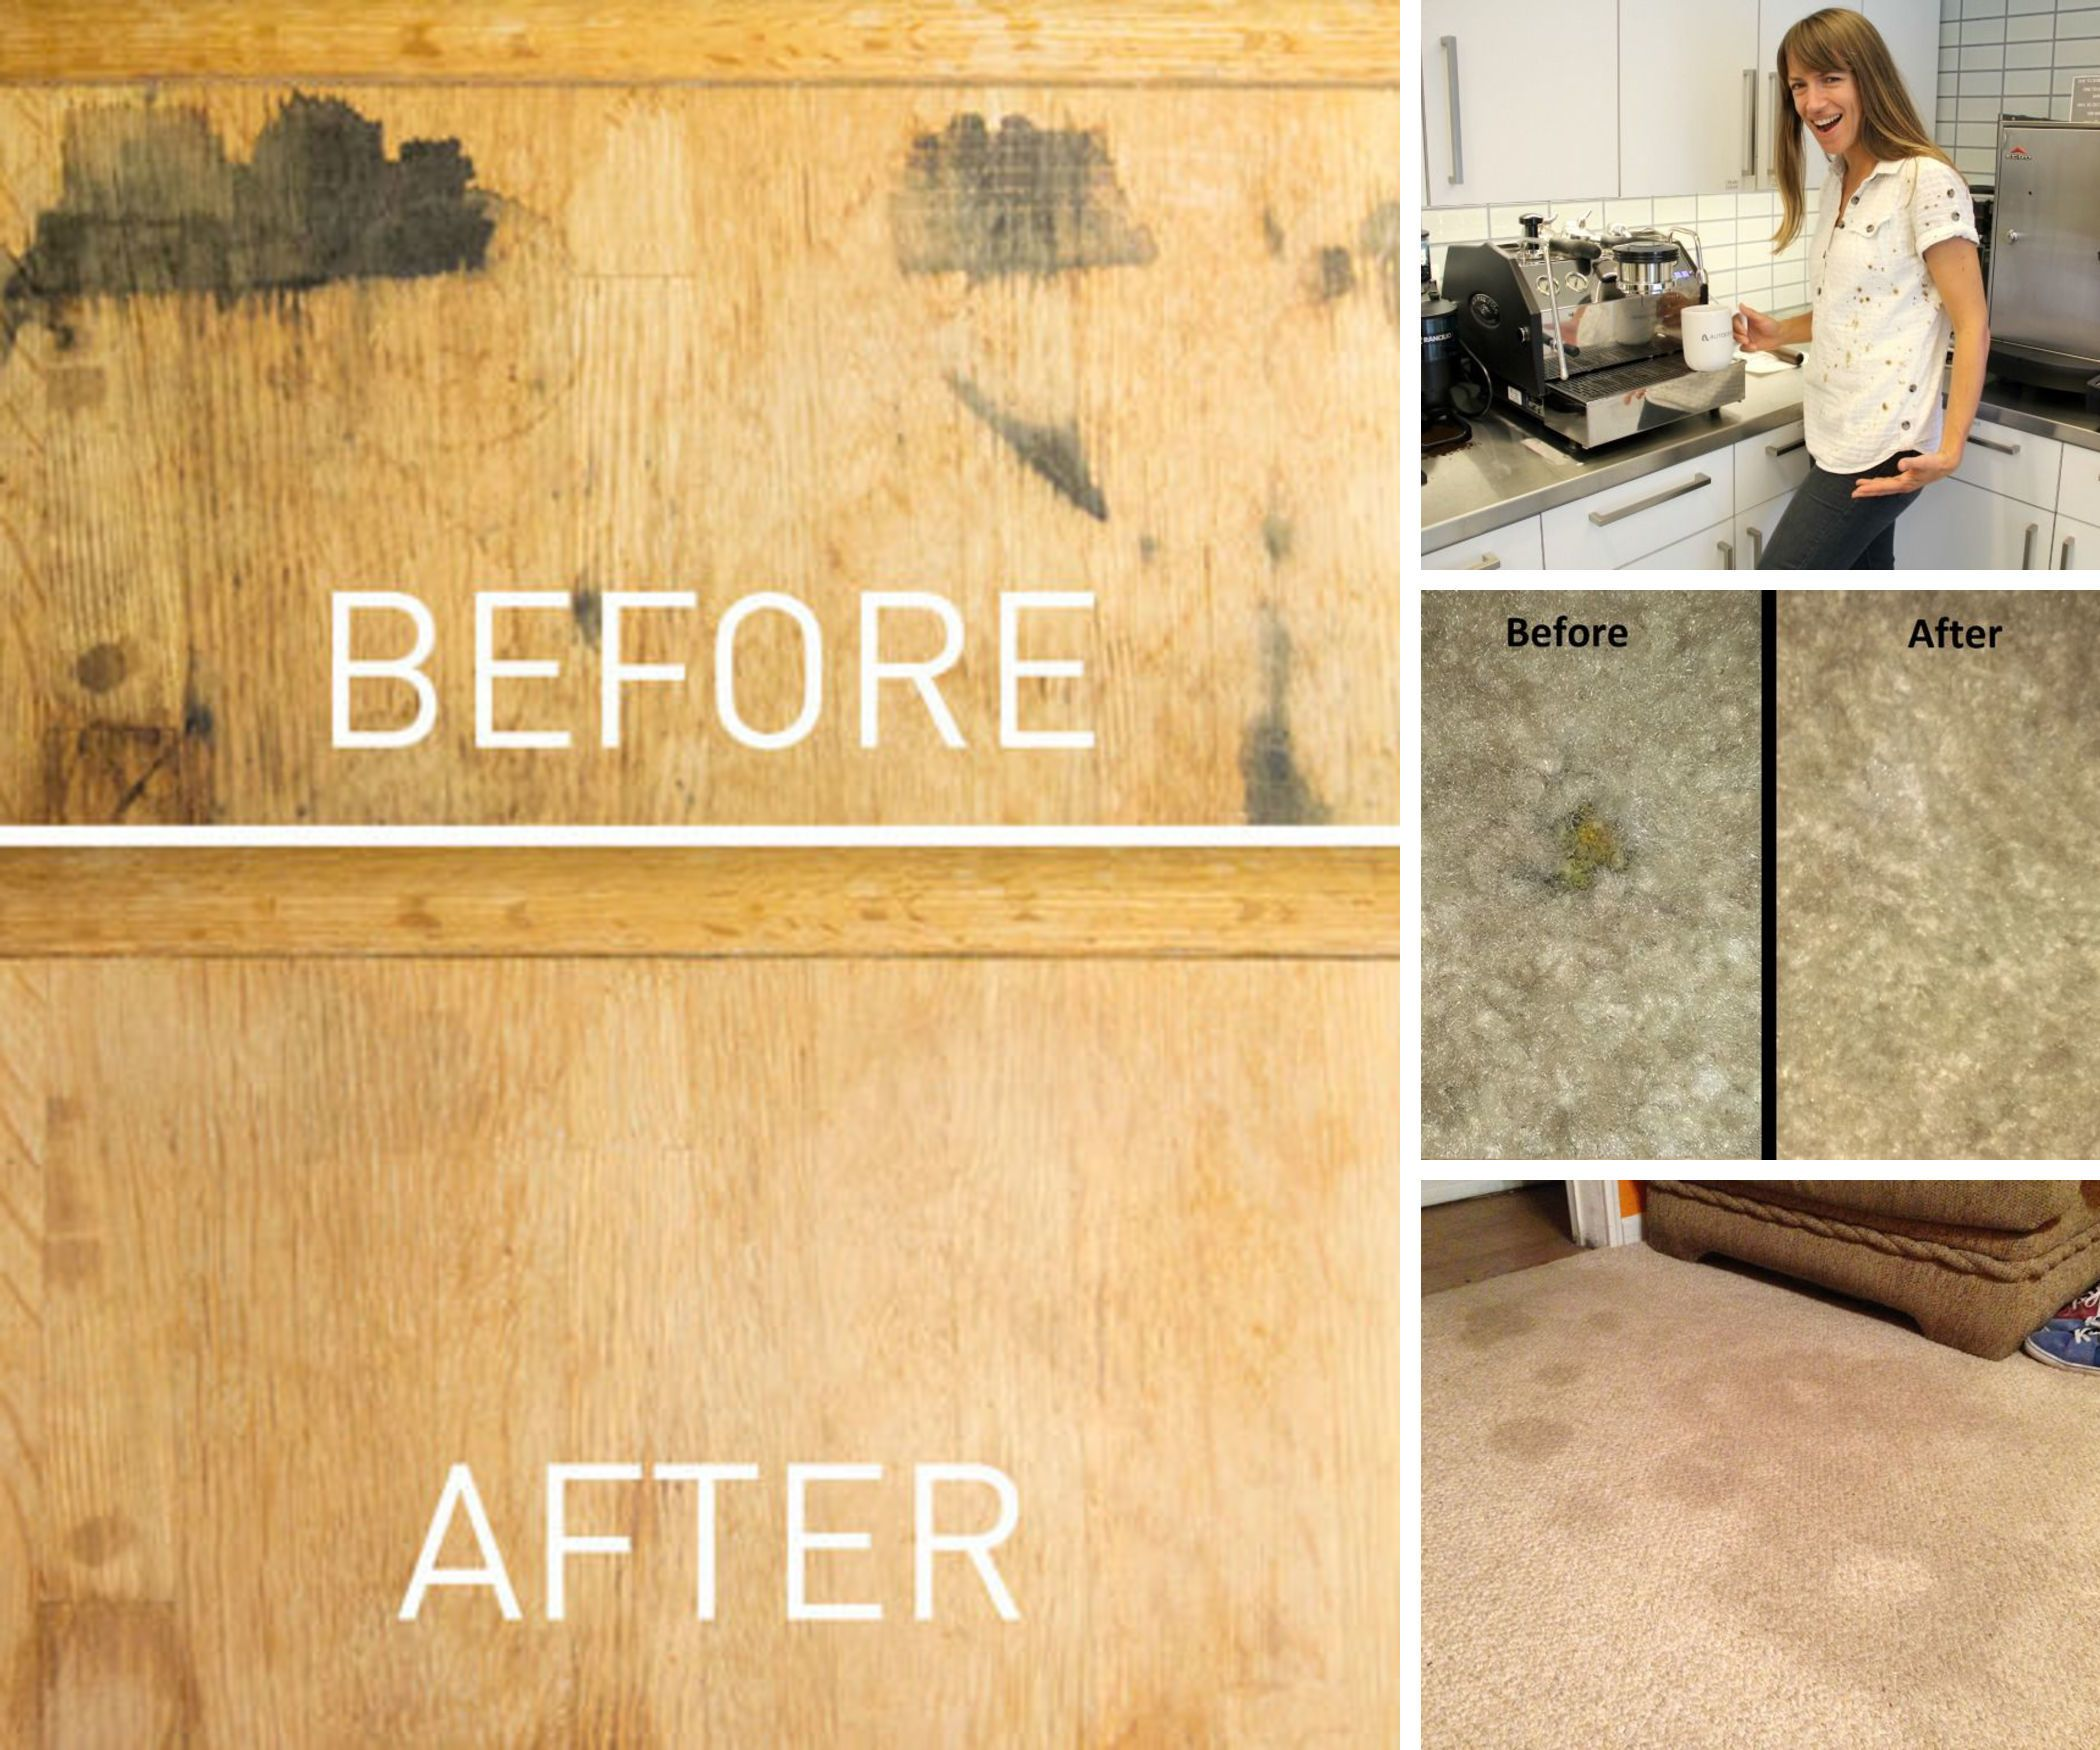 Stain Removing Hacks For The Most Annoying Of Stains Staining Wood Water Stain On Wood Cleaning Hacks